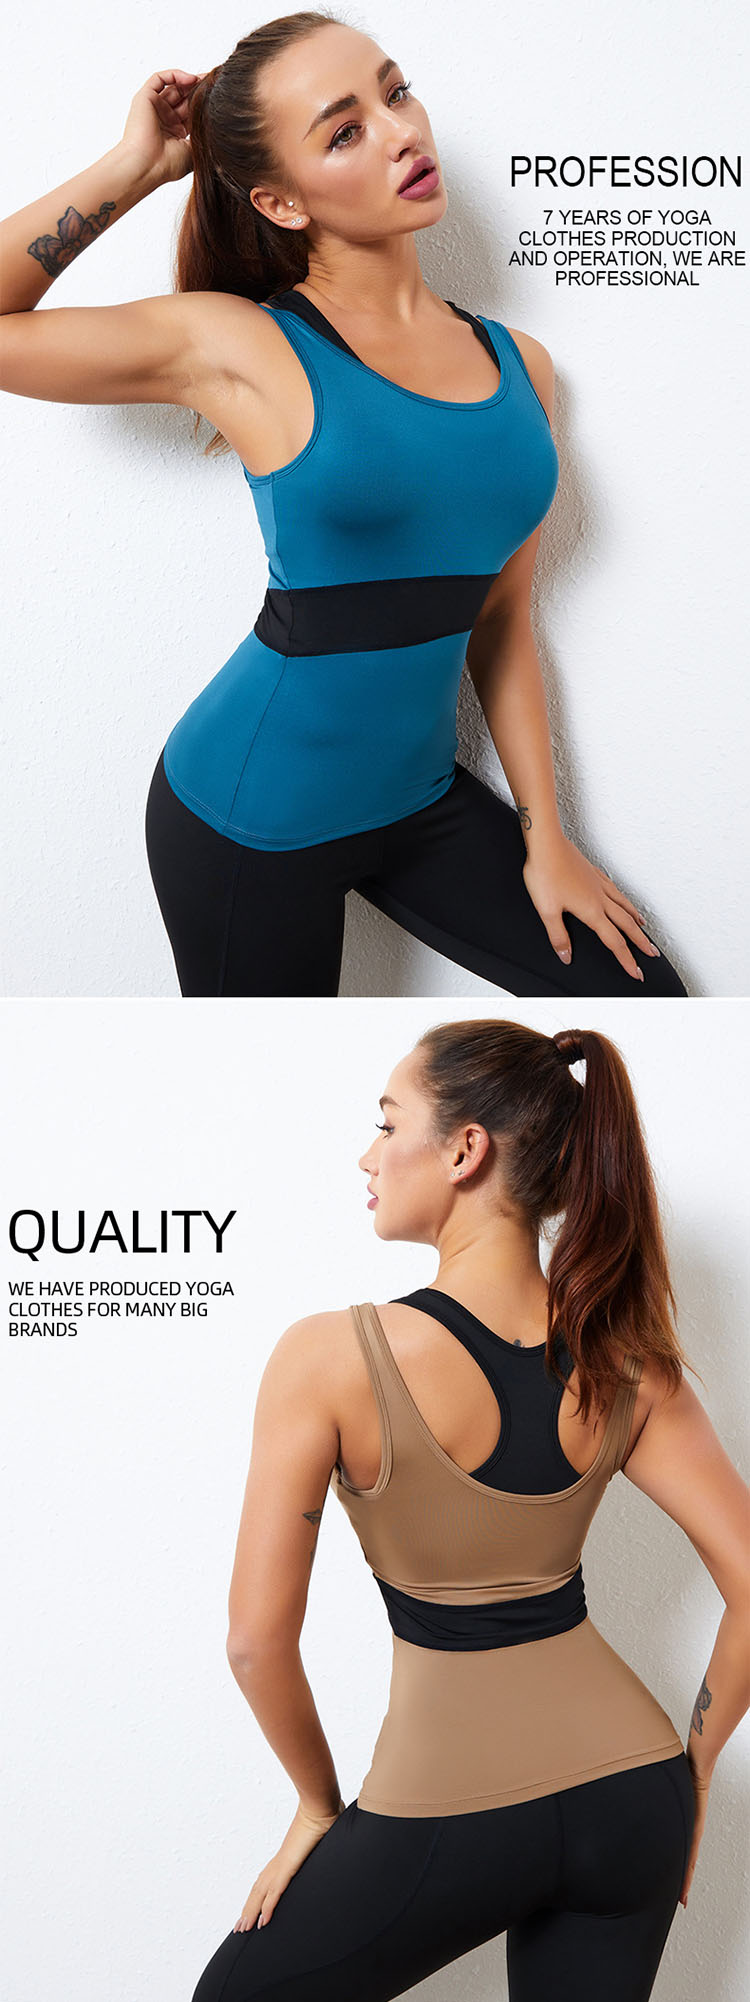 thereby promoting consumers to further enhance their self-perception of comfort and flexibility